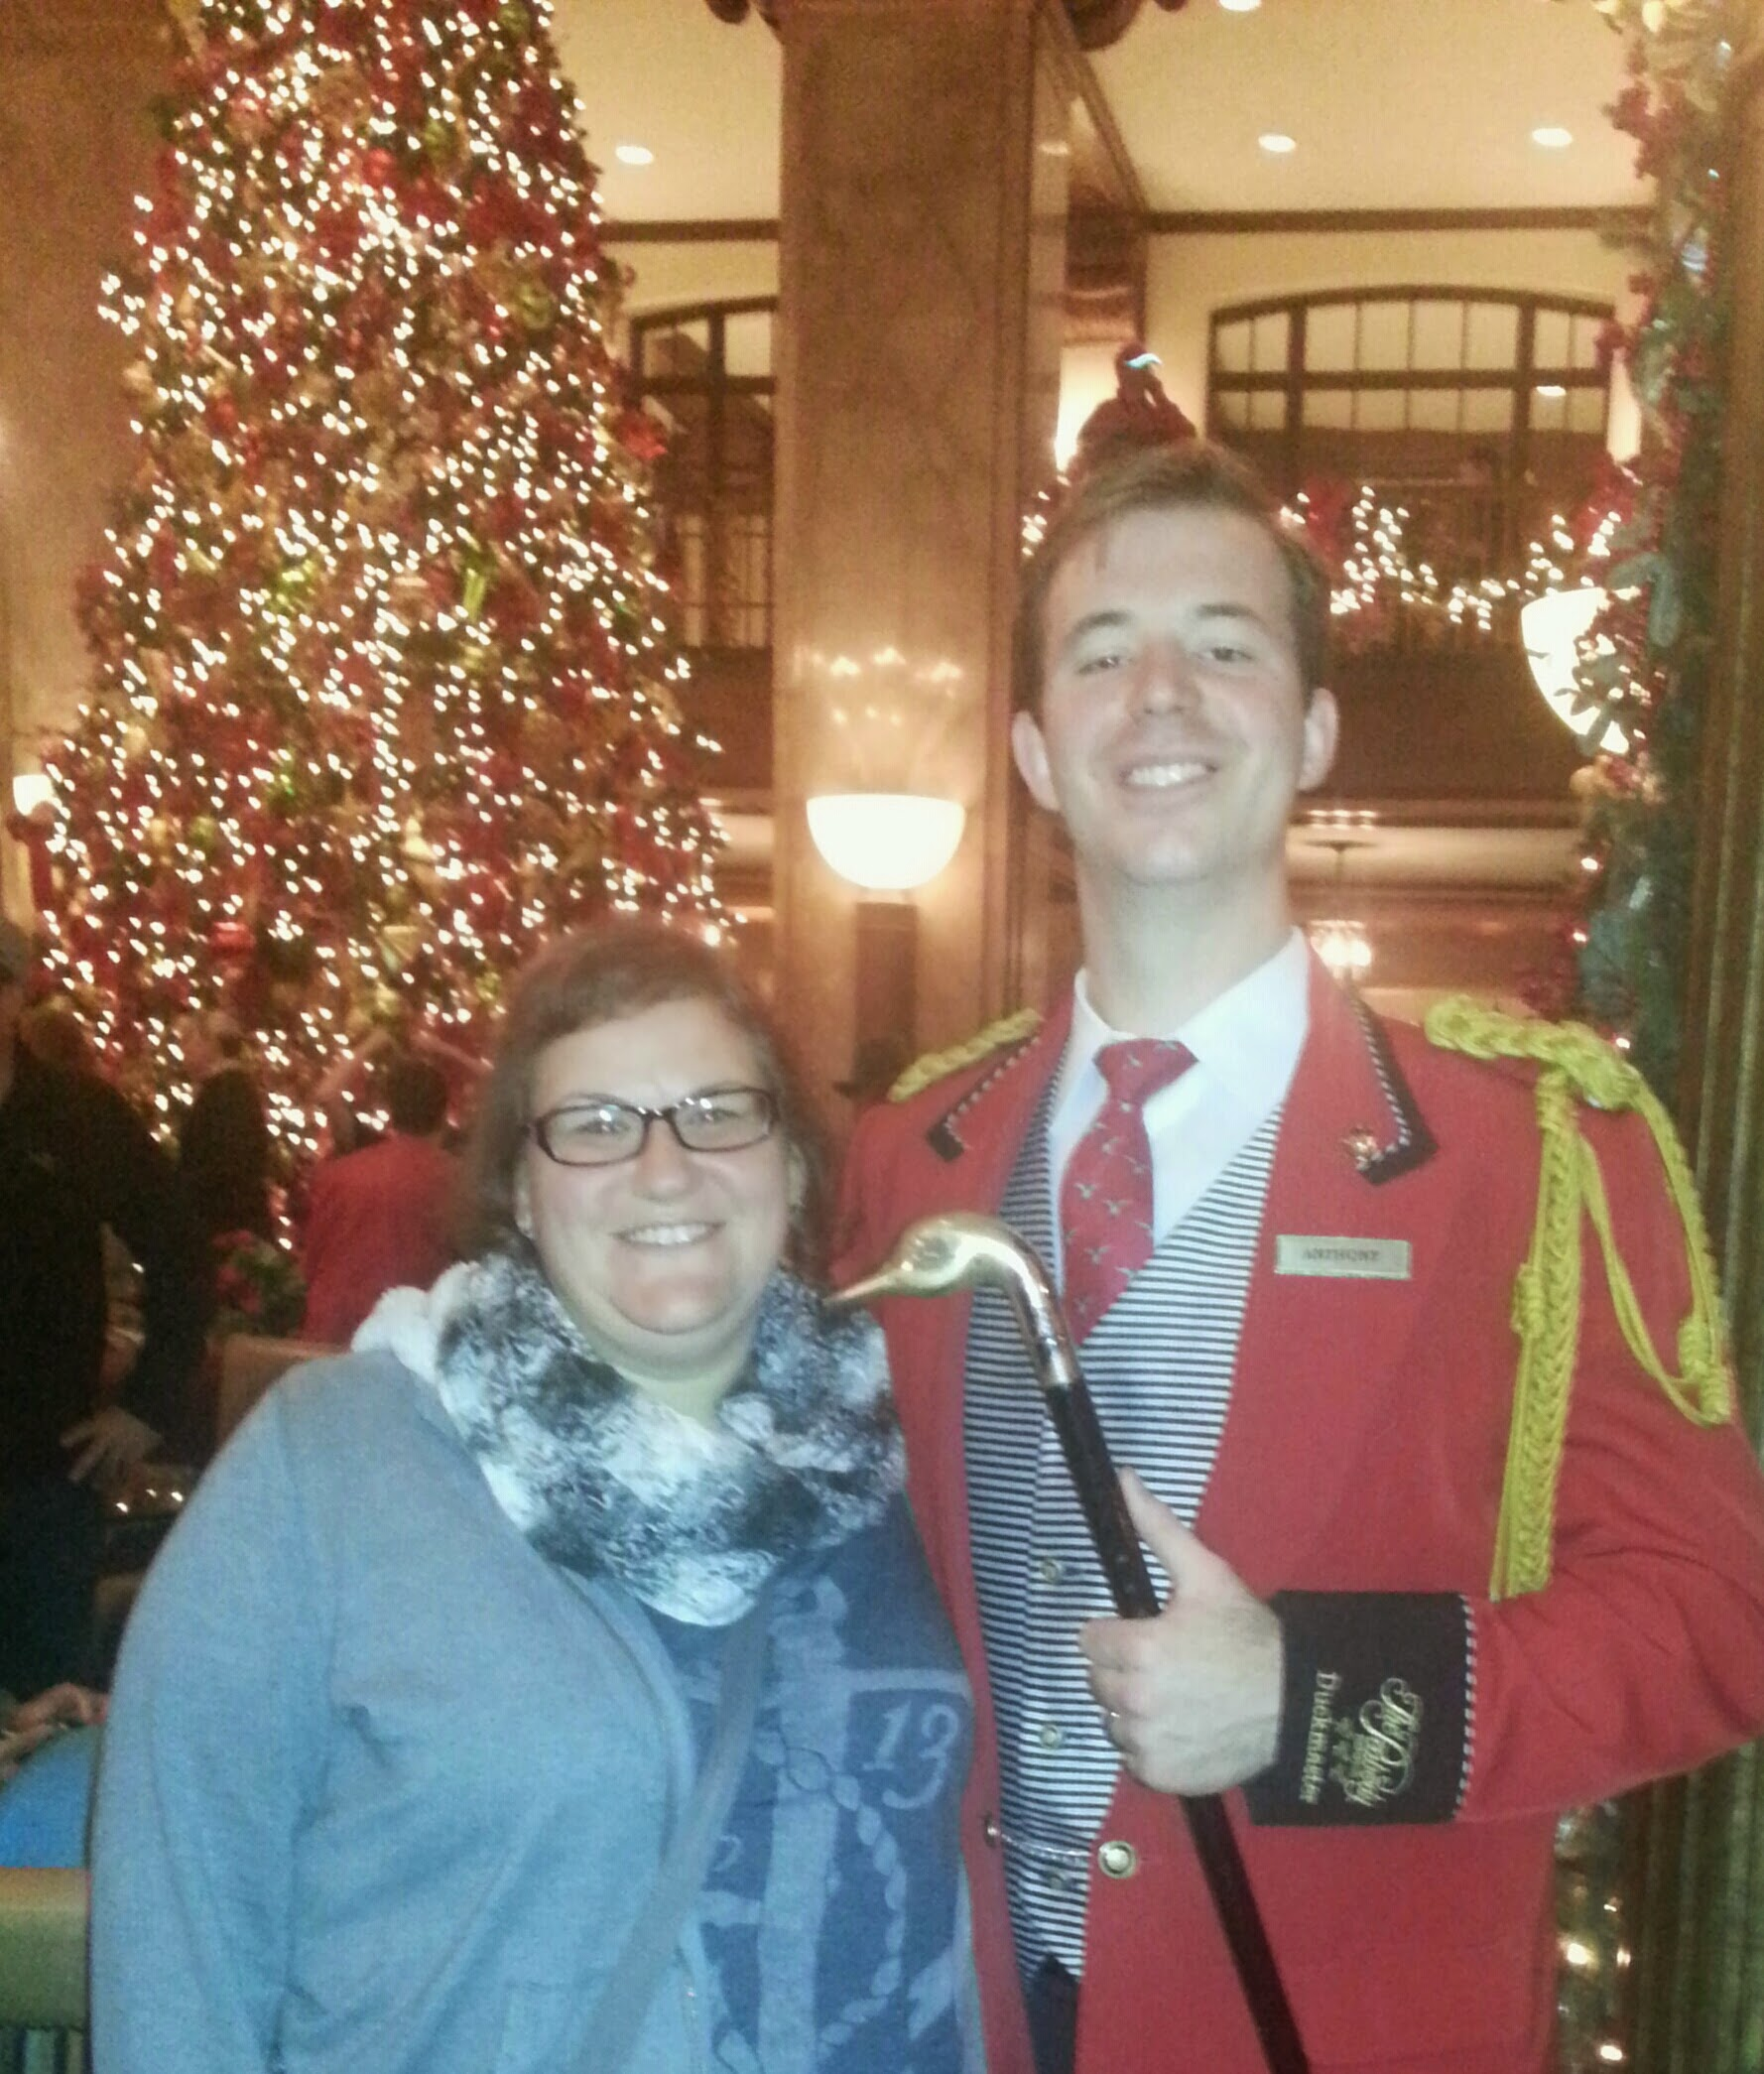 Me with the Peabody Hotel Duckmaster.